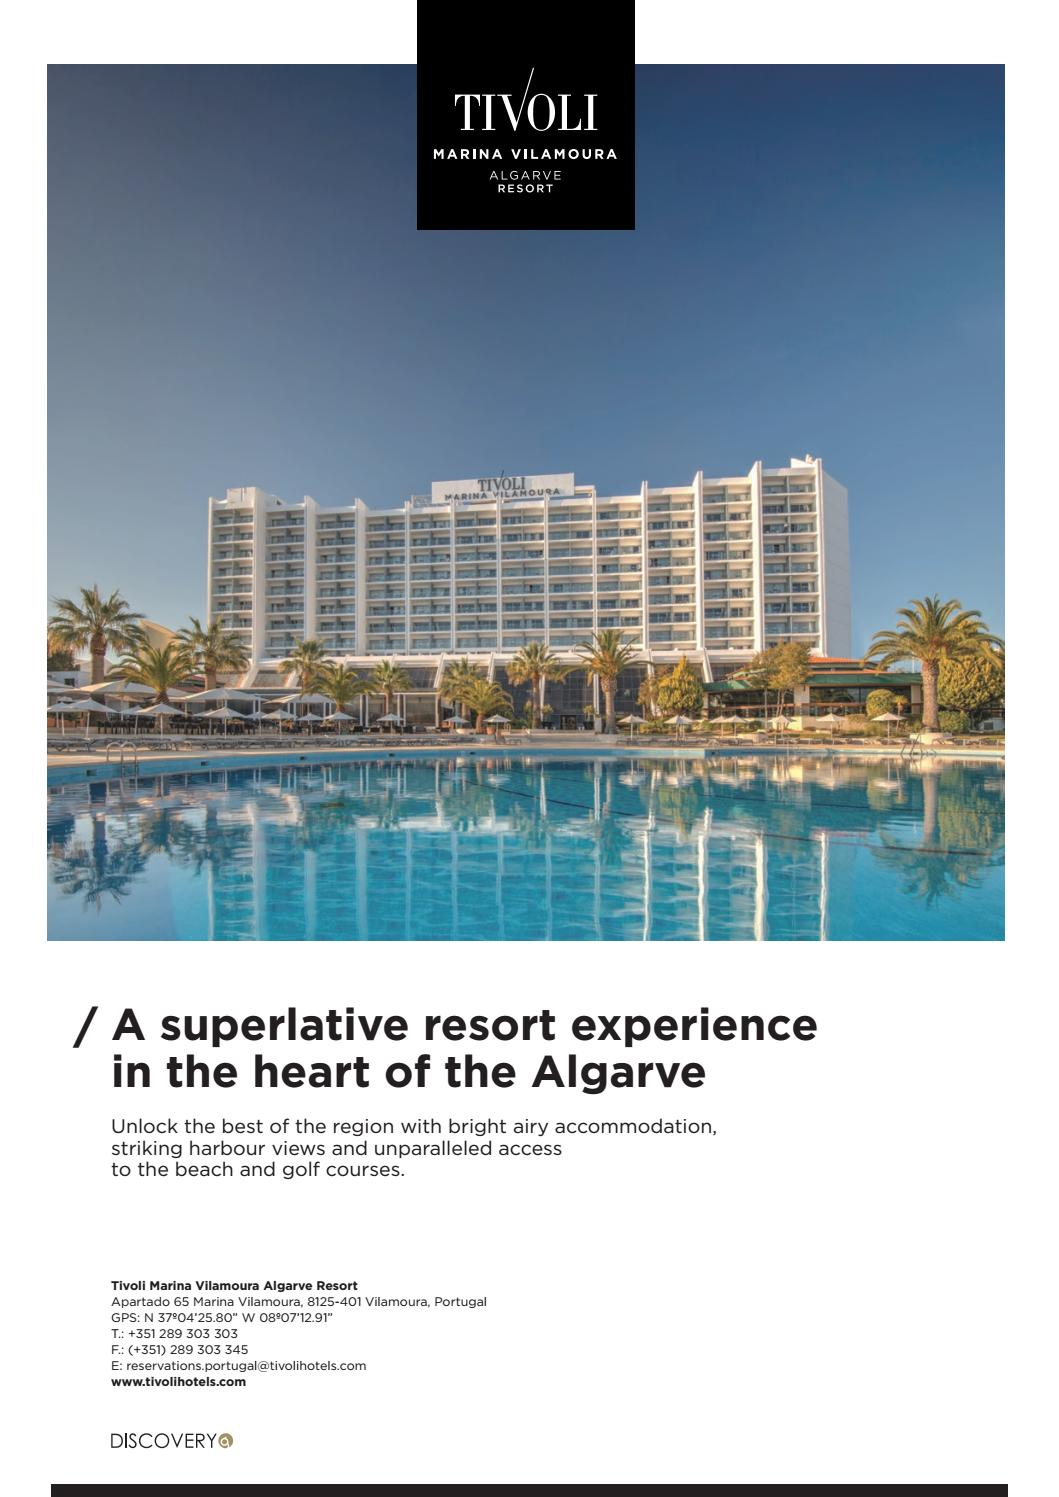 Portugal Algarve Tivoli Marina Portimao Tivoli Marina Vilamoura Fact Sheet By Minorhotels0 Issuu